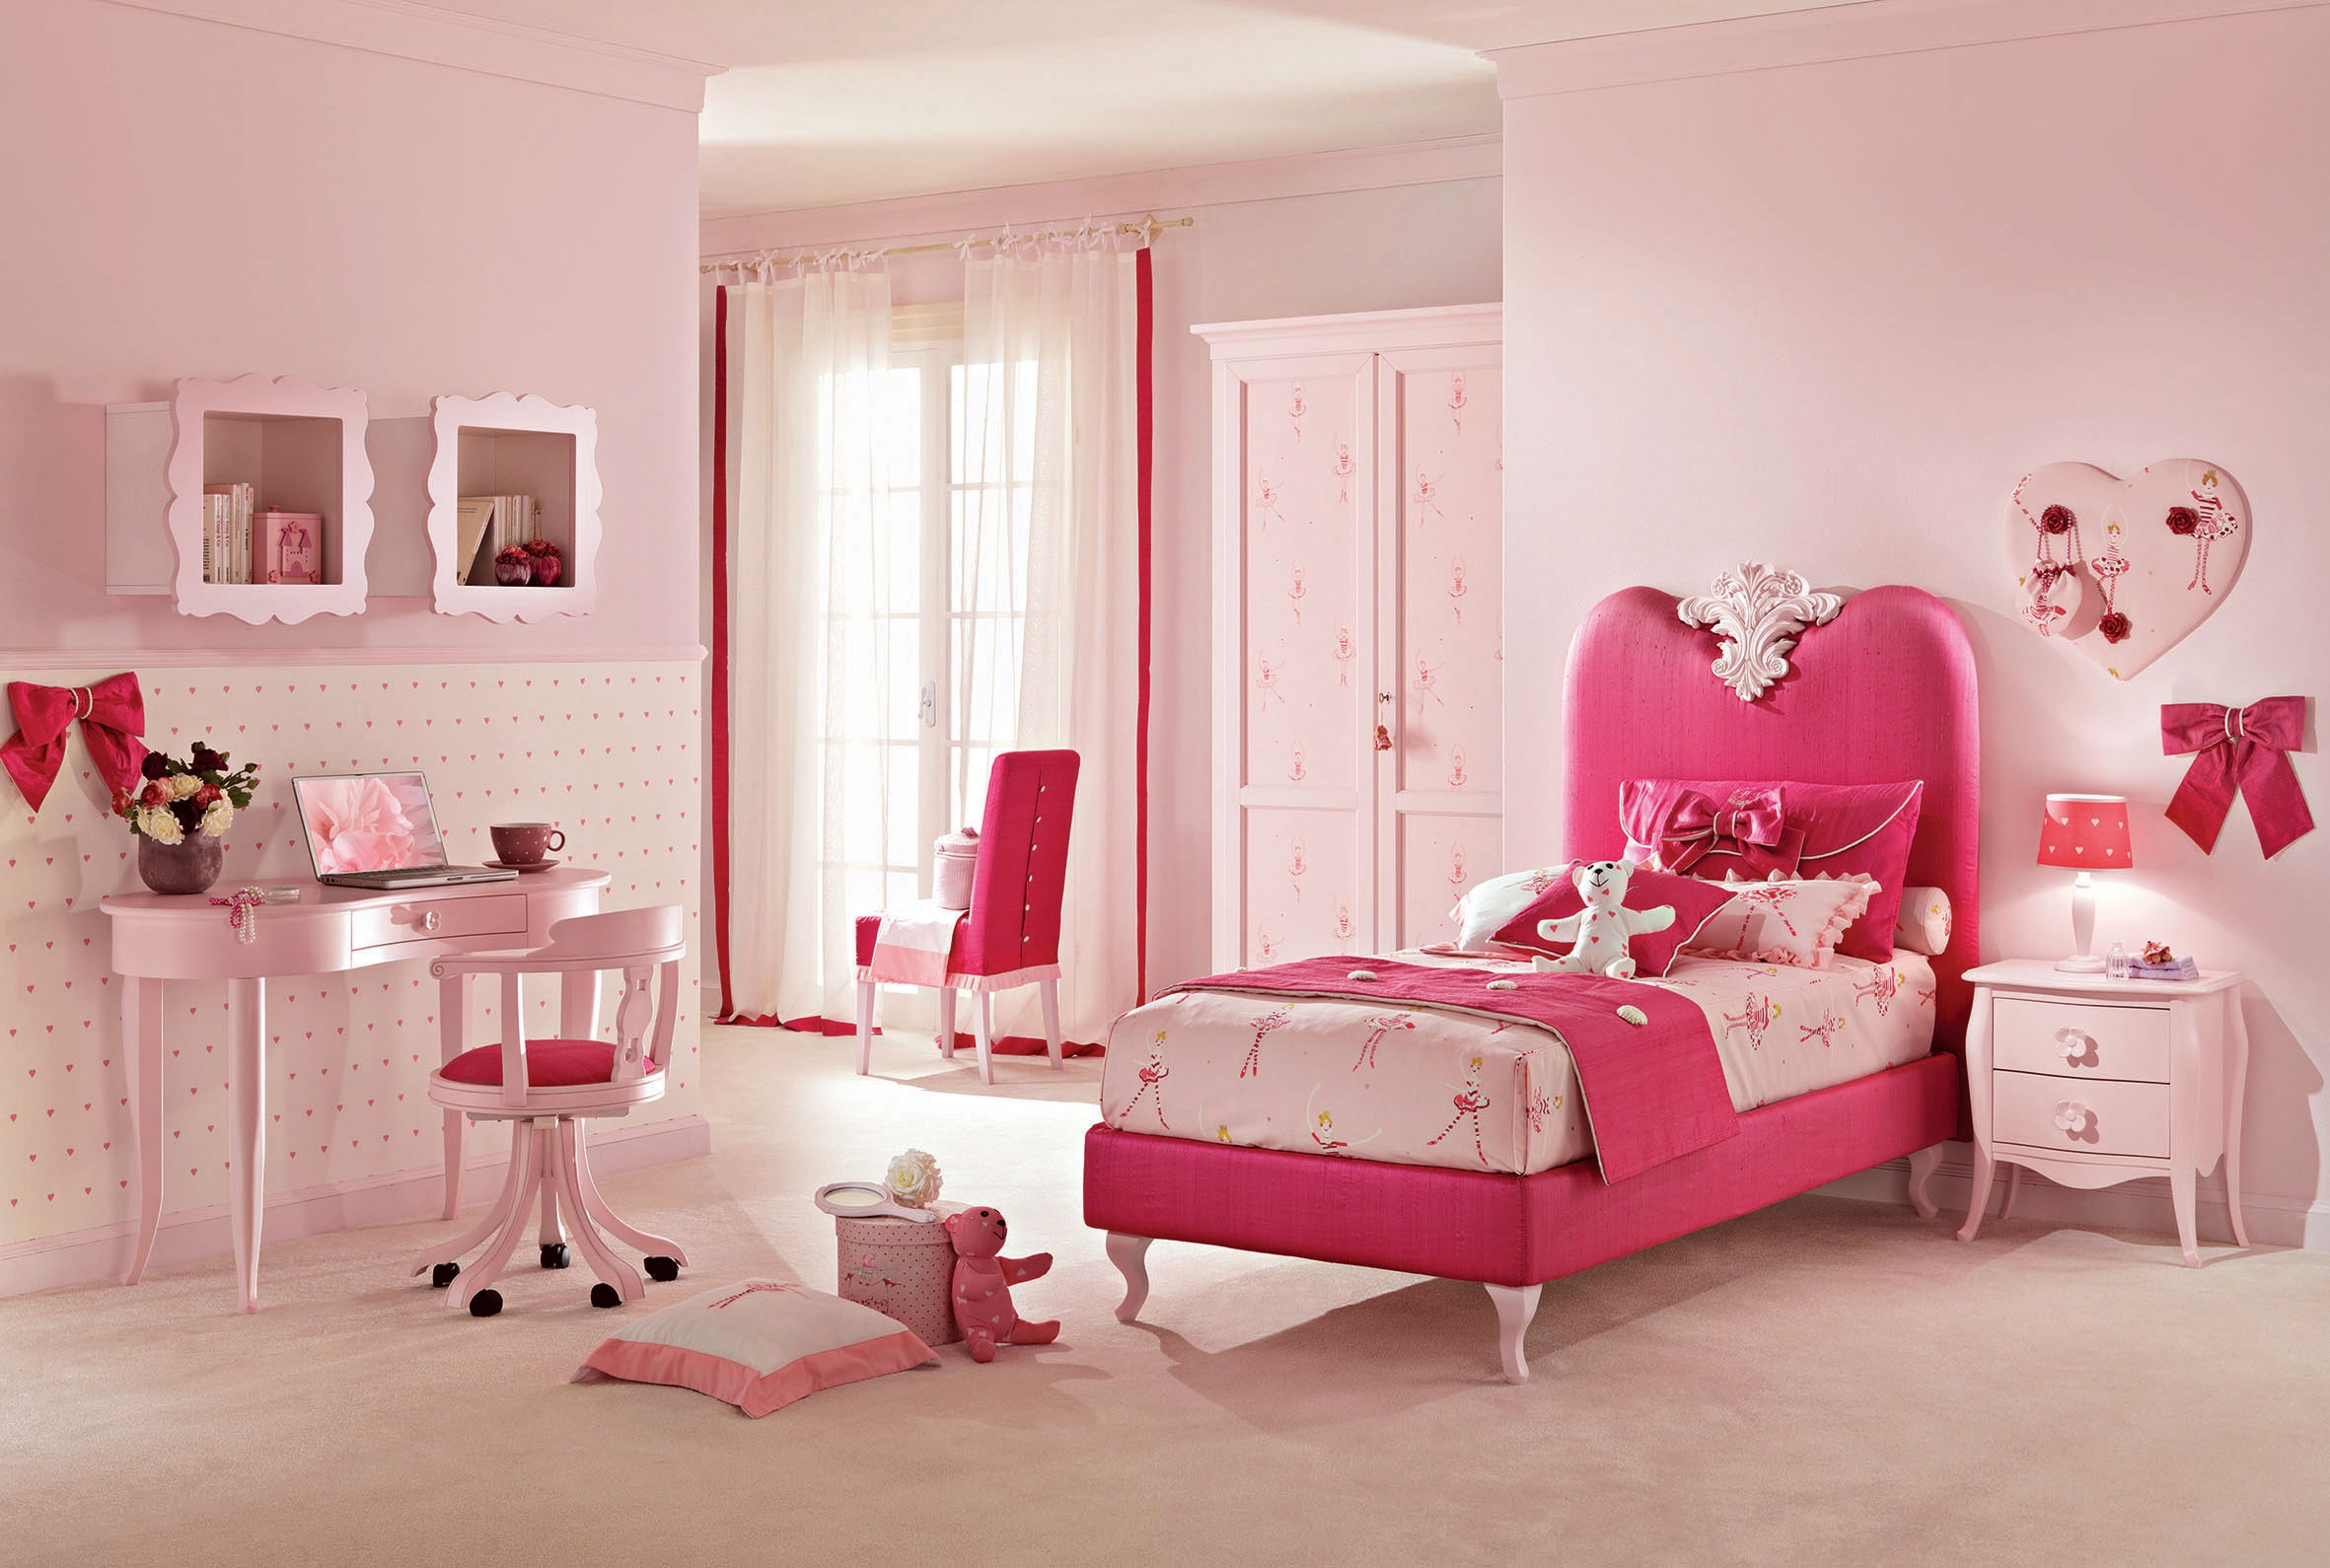 lit 1 personne couleur rose fushia rose pastel piermaria so nuit. Black Bedroom Furniture Sets. Home Design Ideas